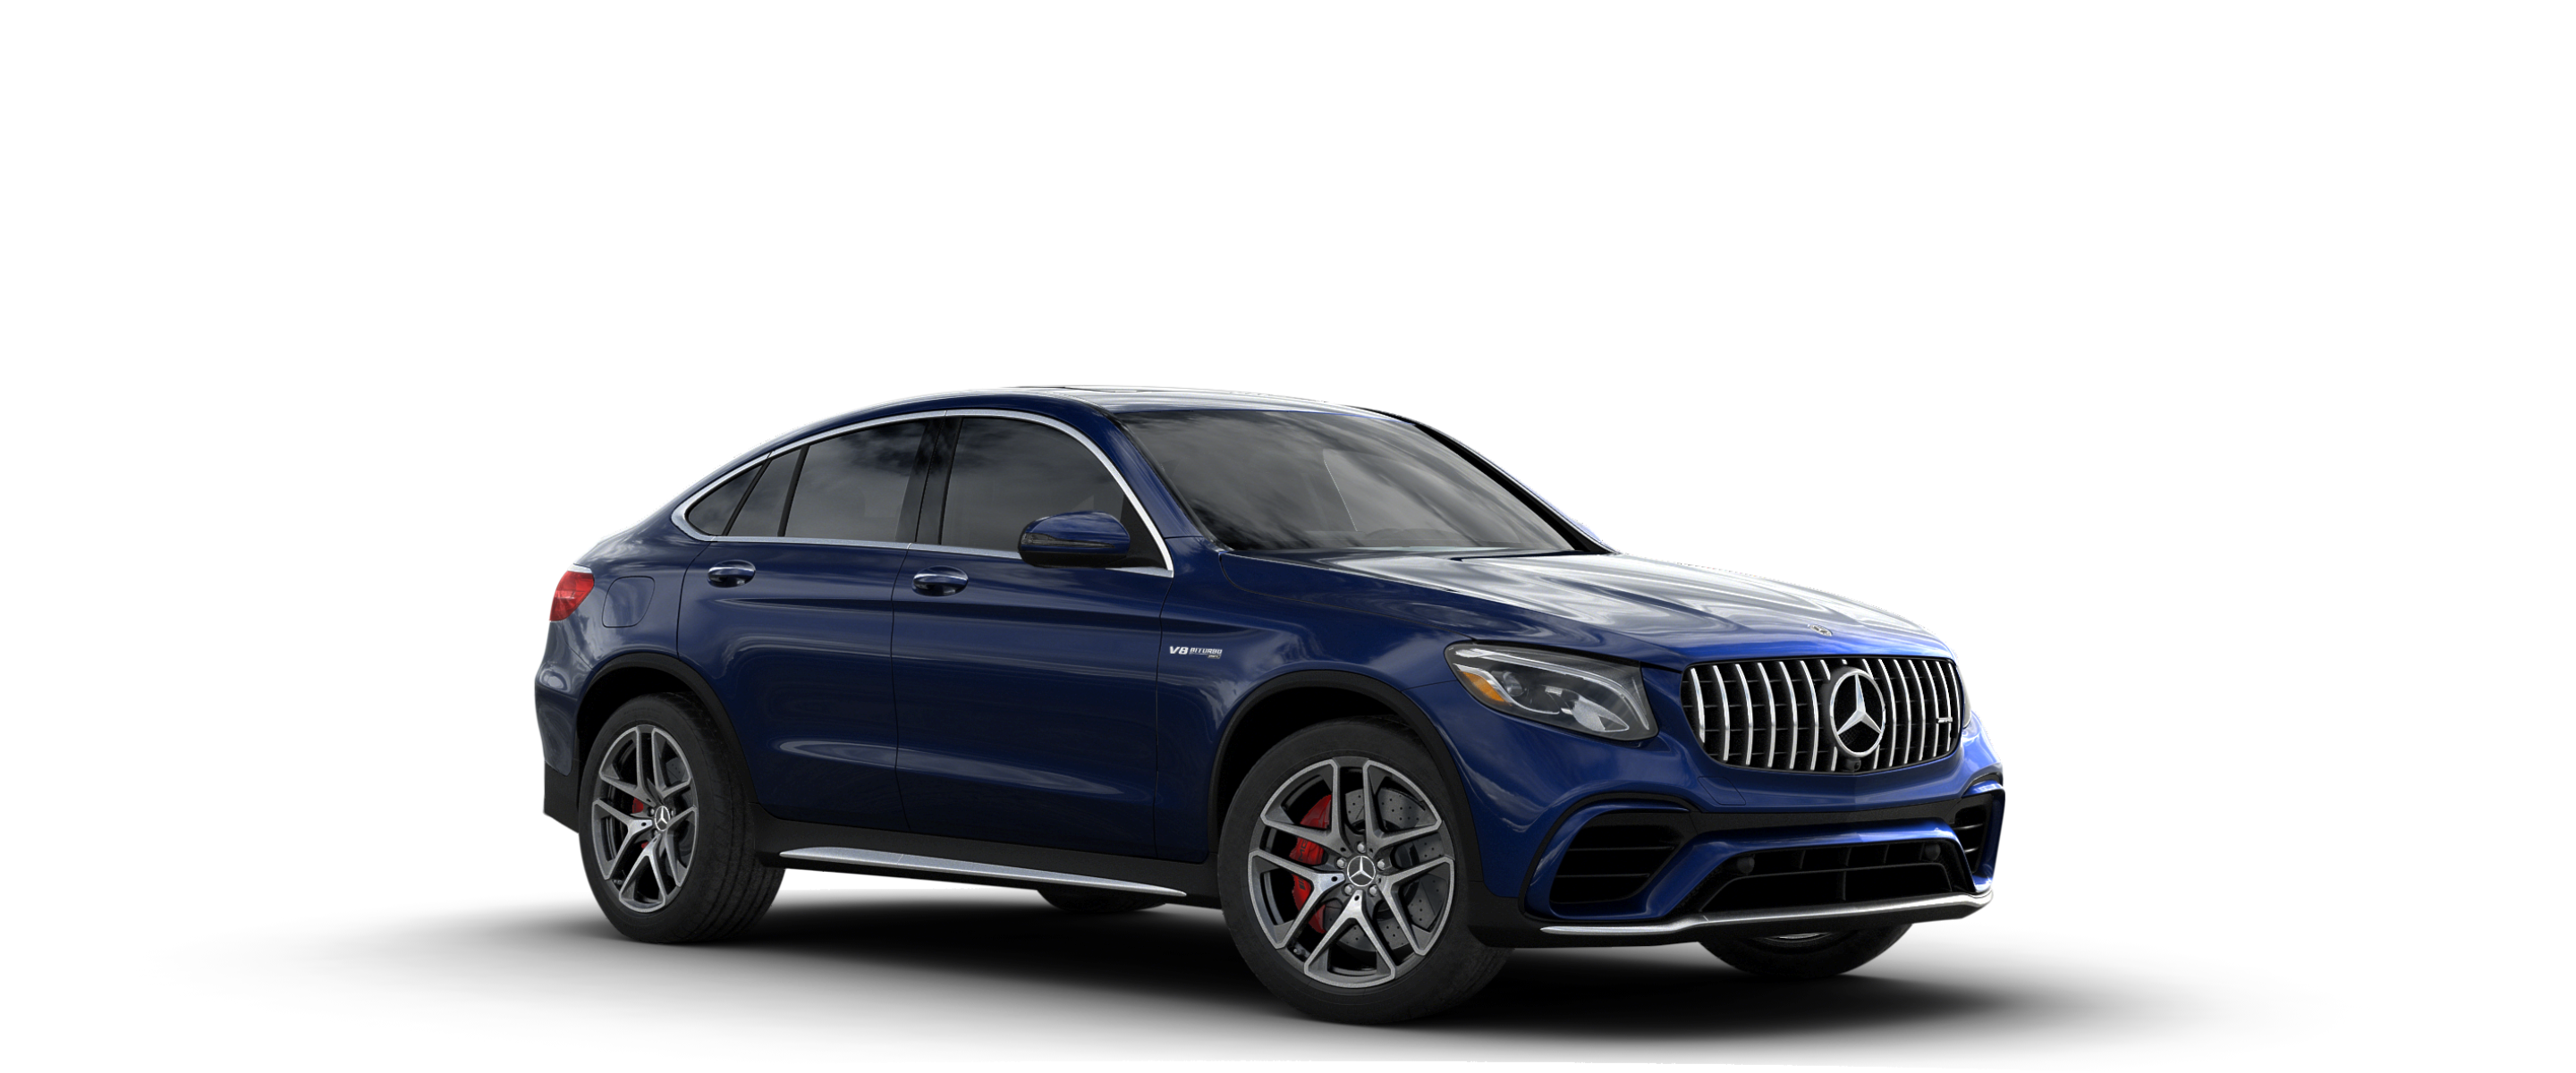 2019 Mercedes-Benz GLC 2019 Mercedes-Benz AMG® GLC 63 S Coupe